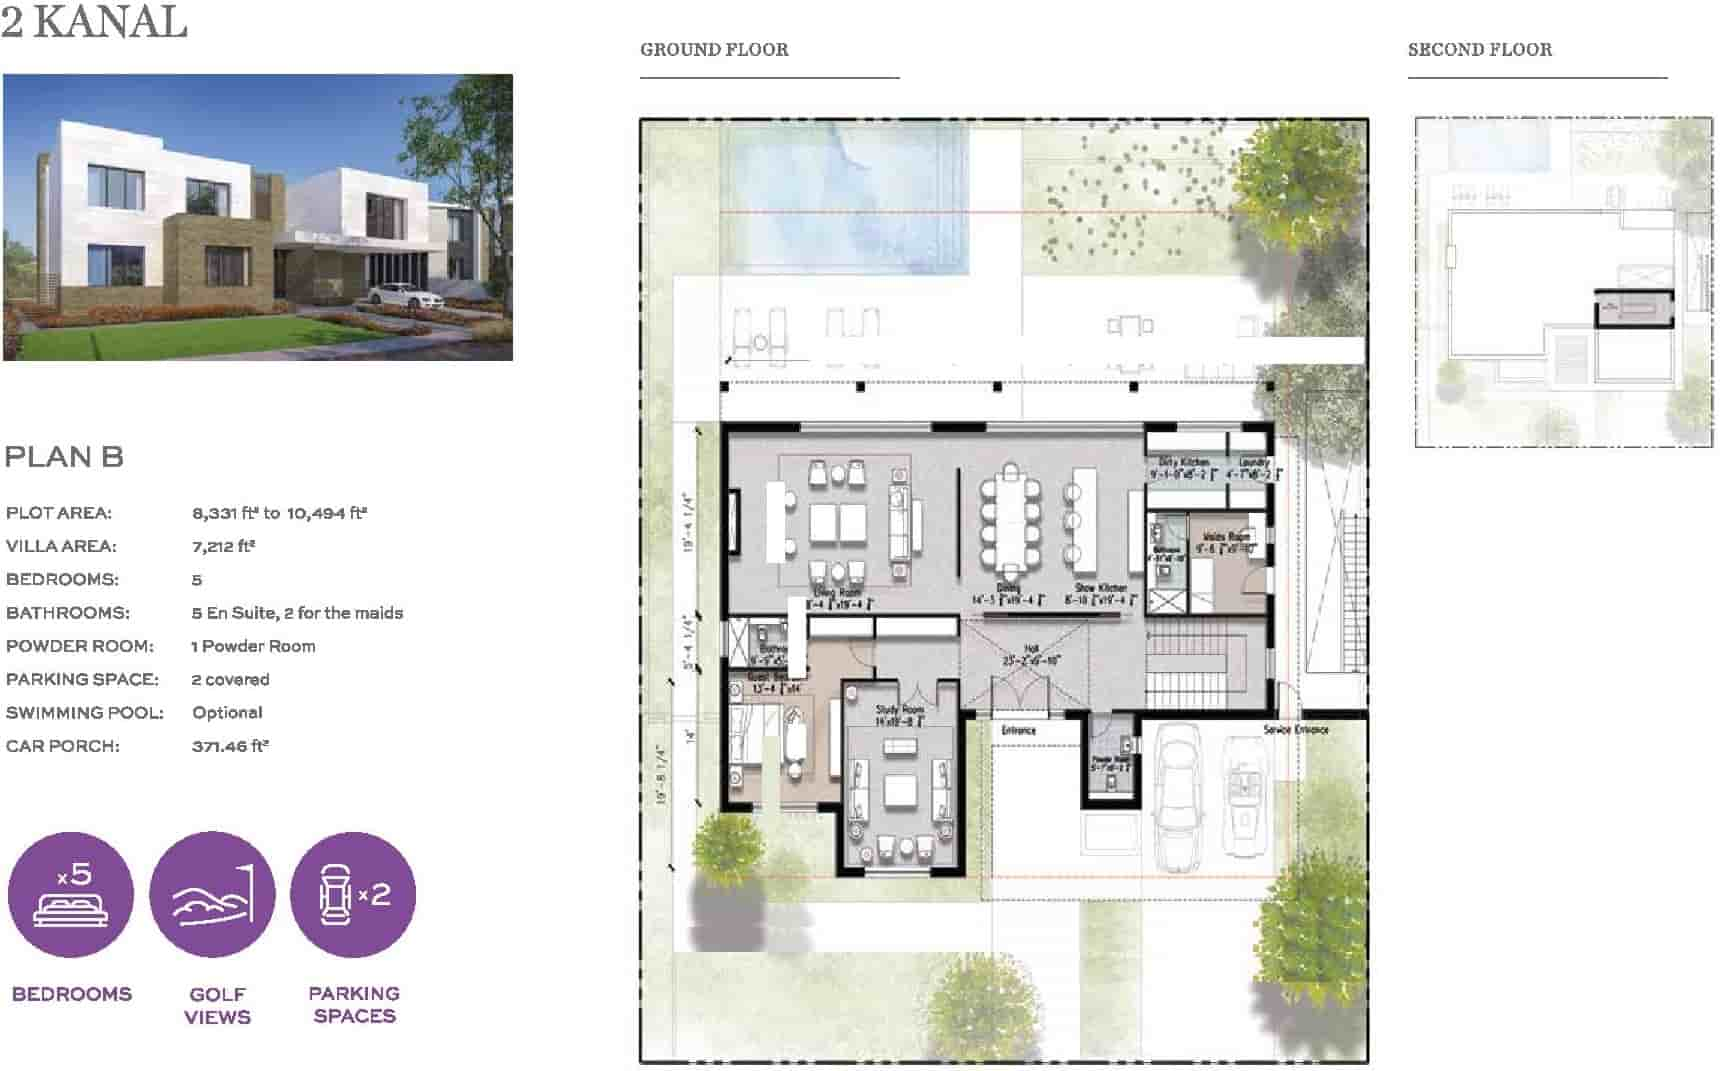 Eighteen 2 Kanal Villa Plan B